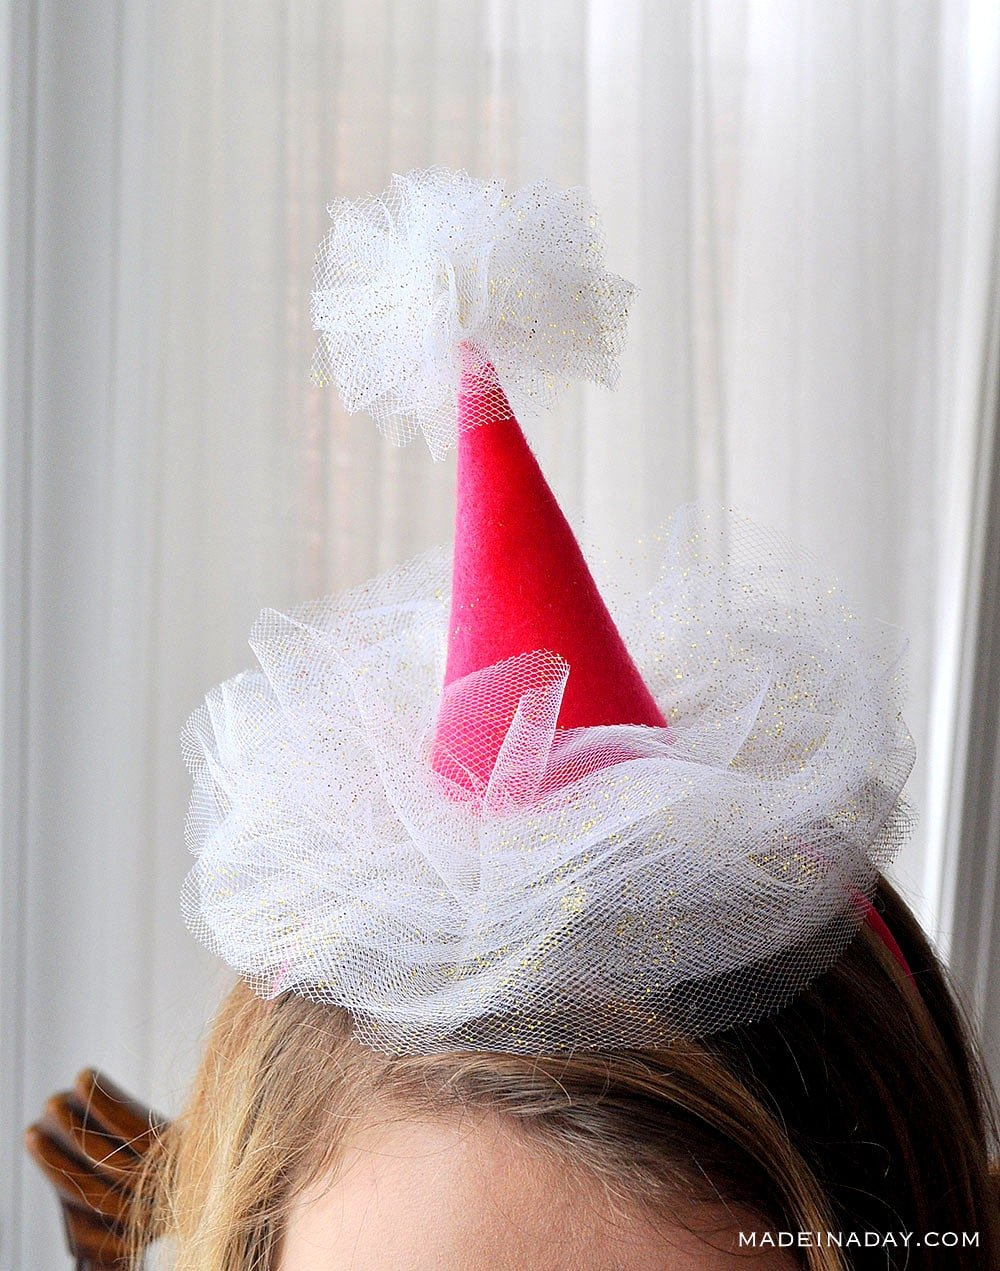 I Love The Fun Mini Hats You Can Buy For Costumes What A Cute Idea To Make Them Birthdays When One Of My Family Members Has Birthday We Always Wear